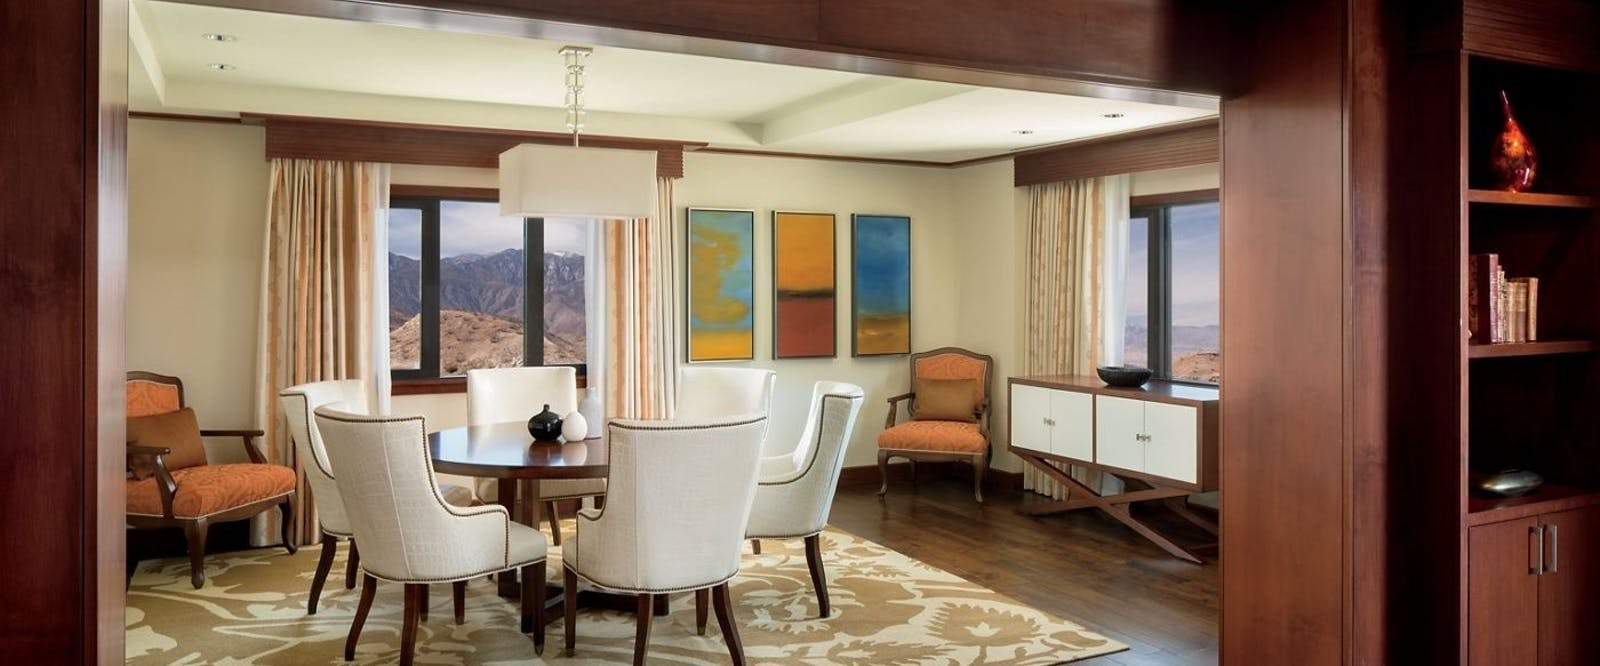 The Ritz Carlton Suite at The Ritz-Carlton, Rancho Mirage